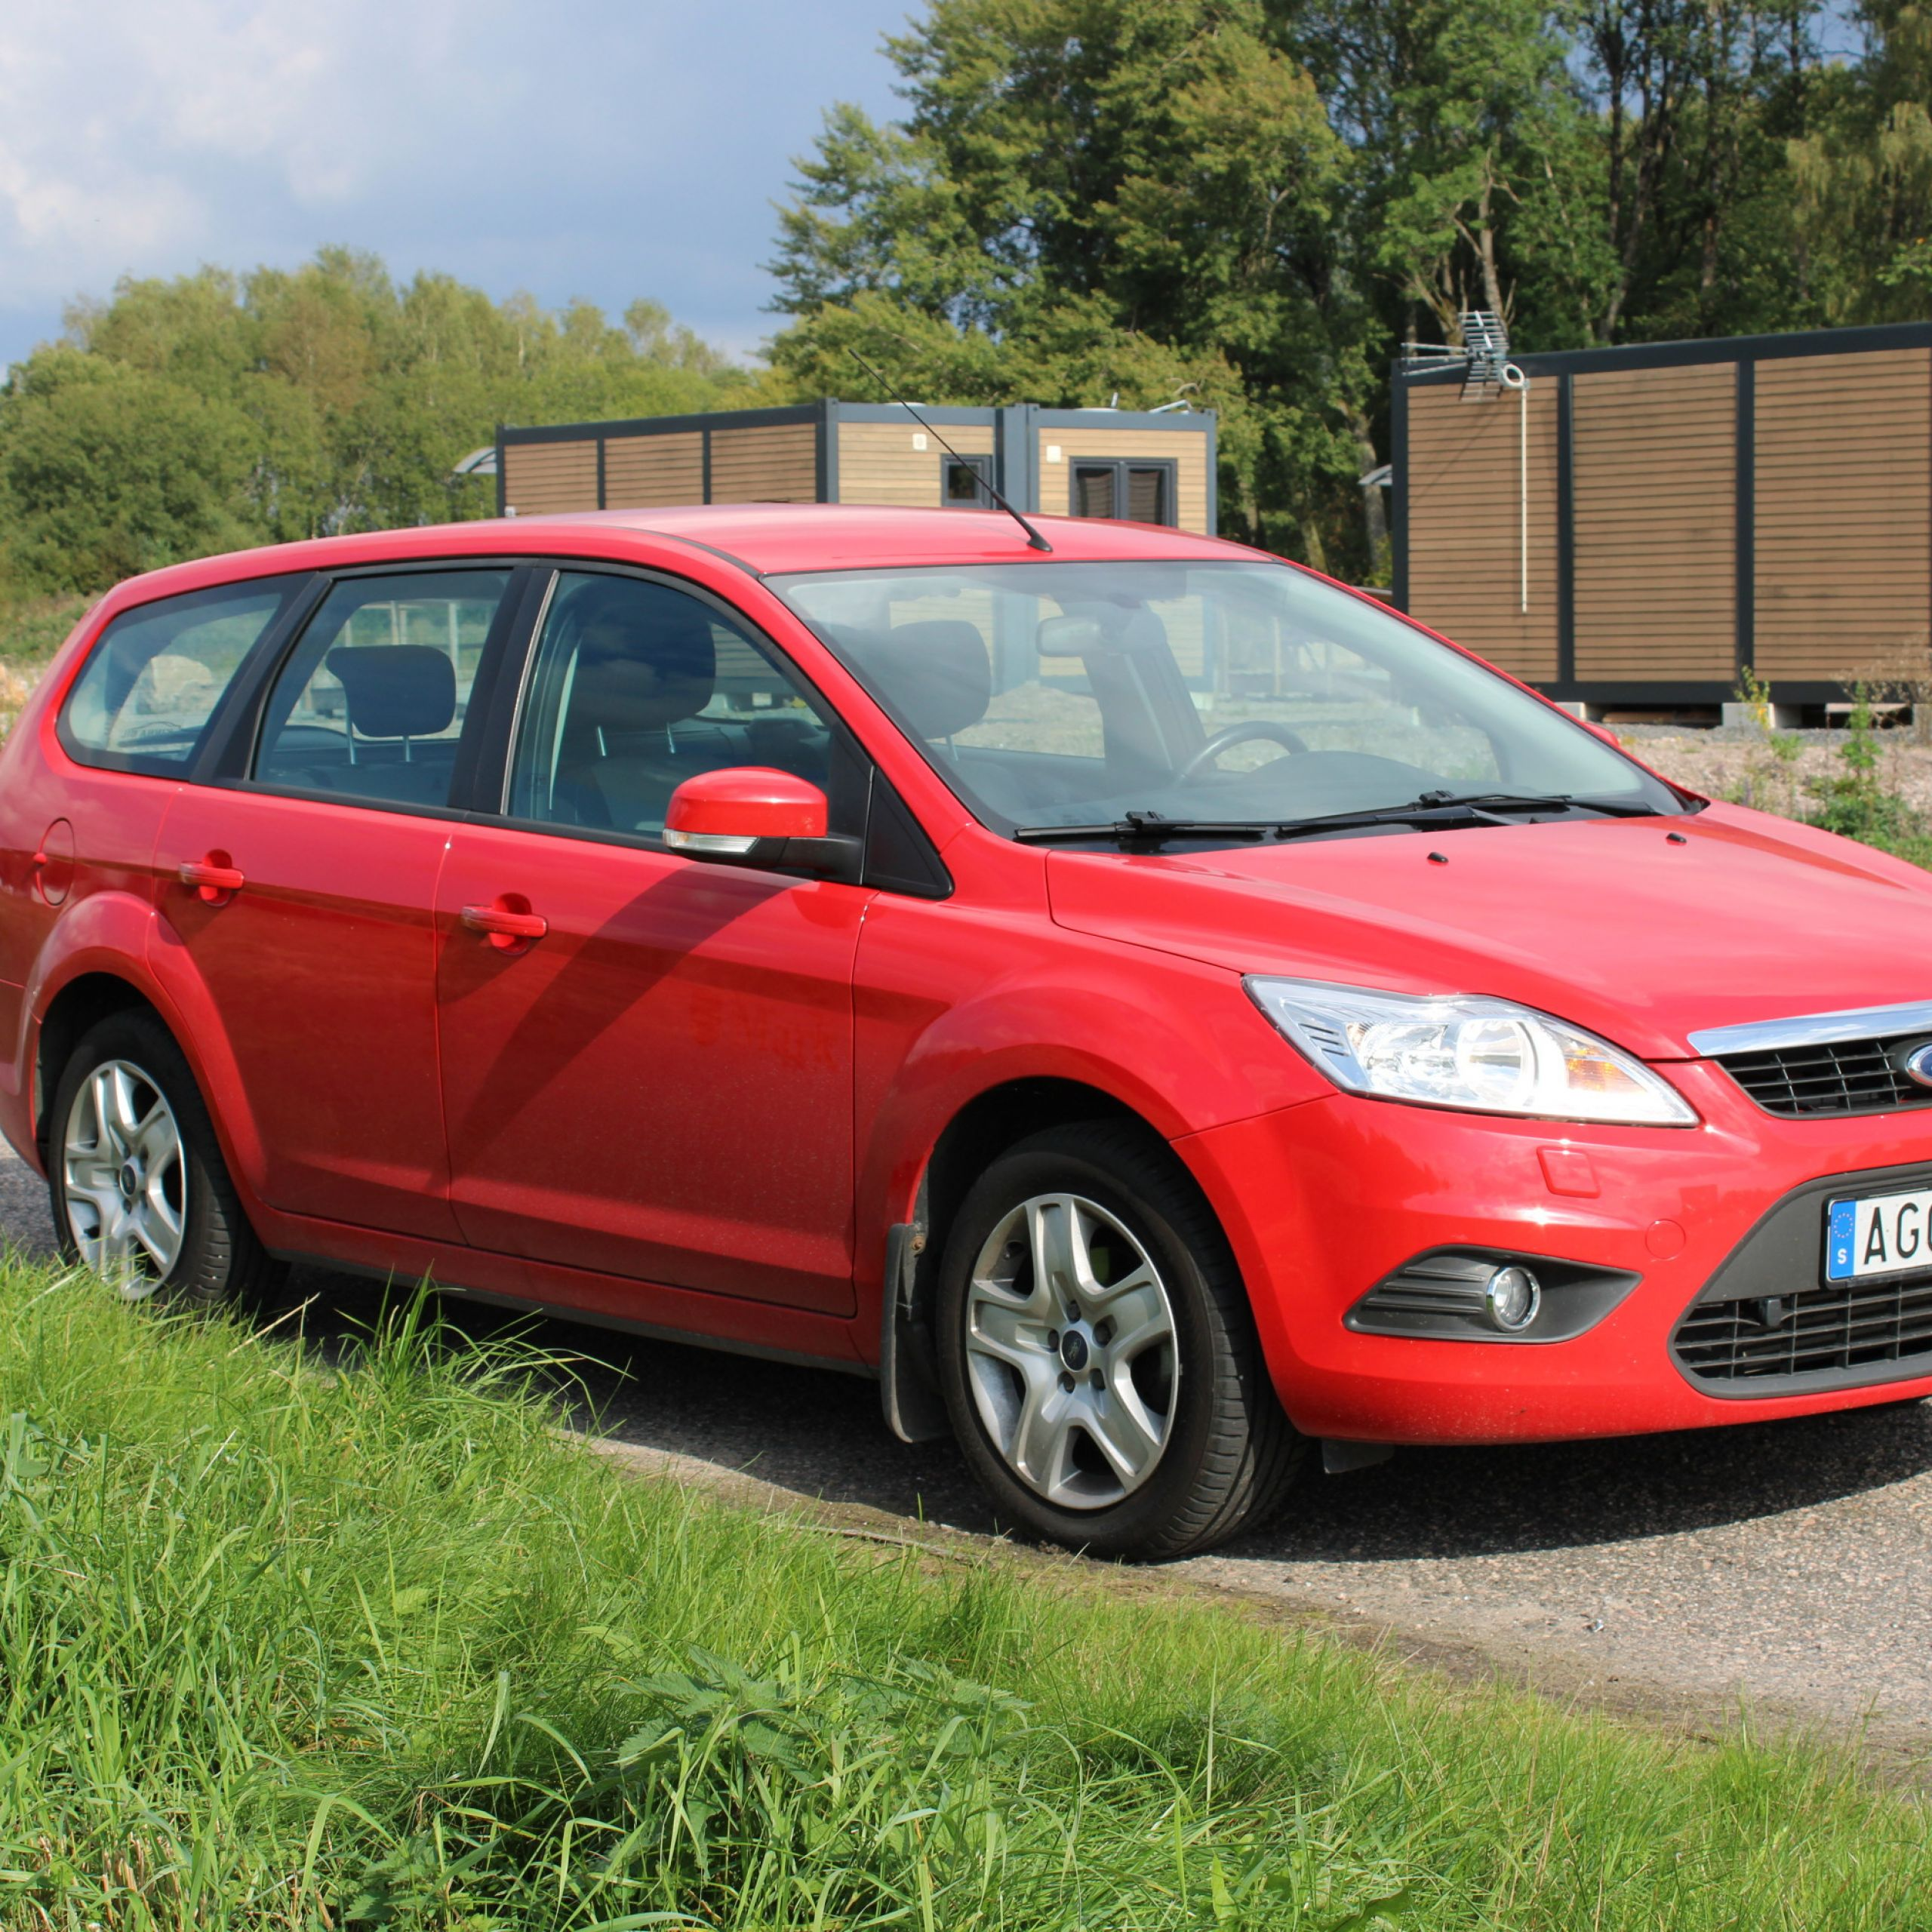 Ford Focus 2010 Best Of ford Focus 1 6 Tdci 10 [agg719] Ps Auction We Value the